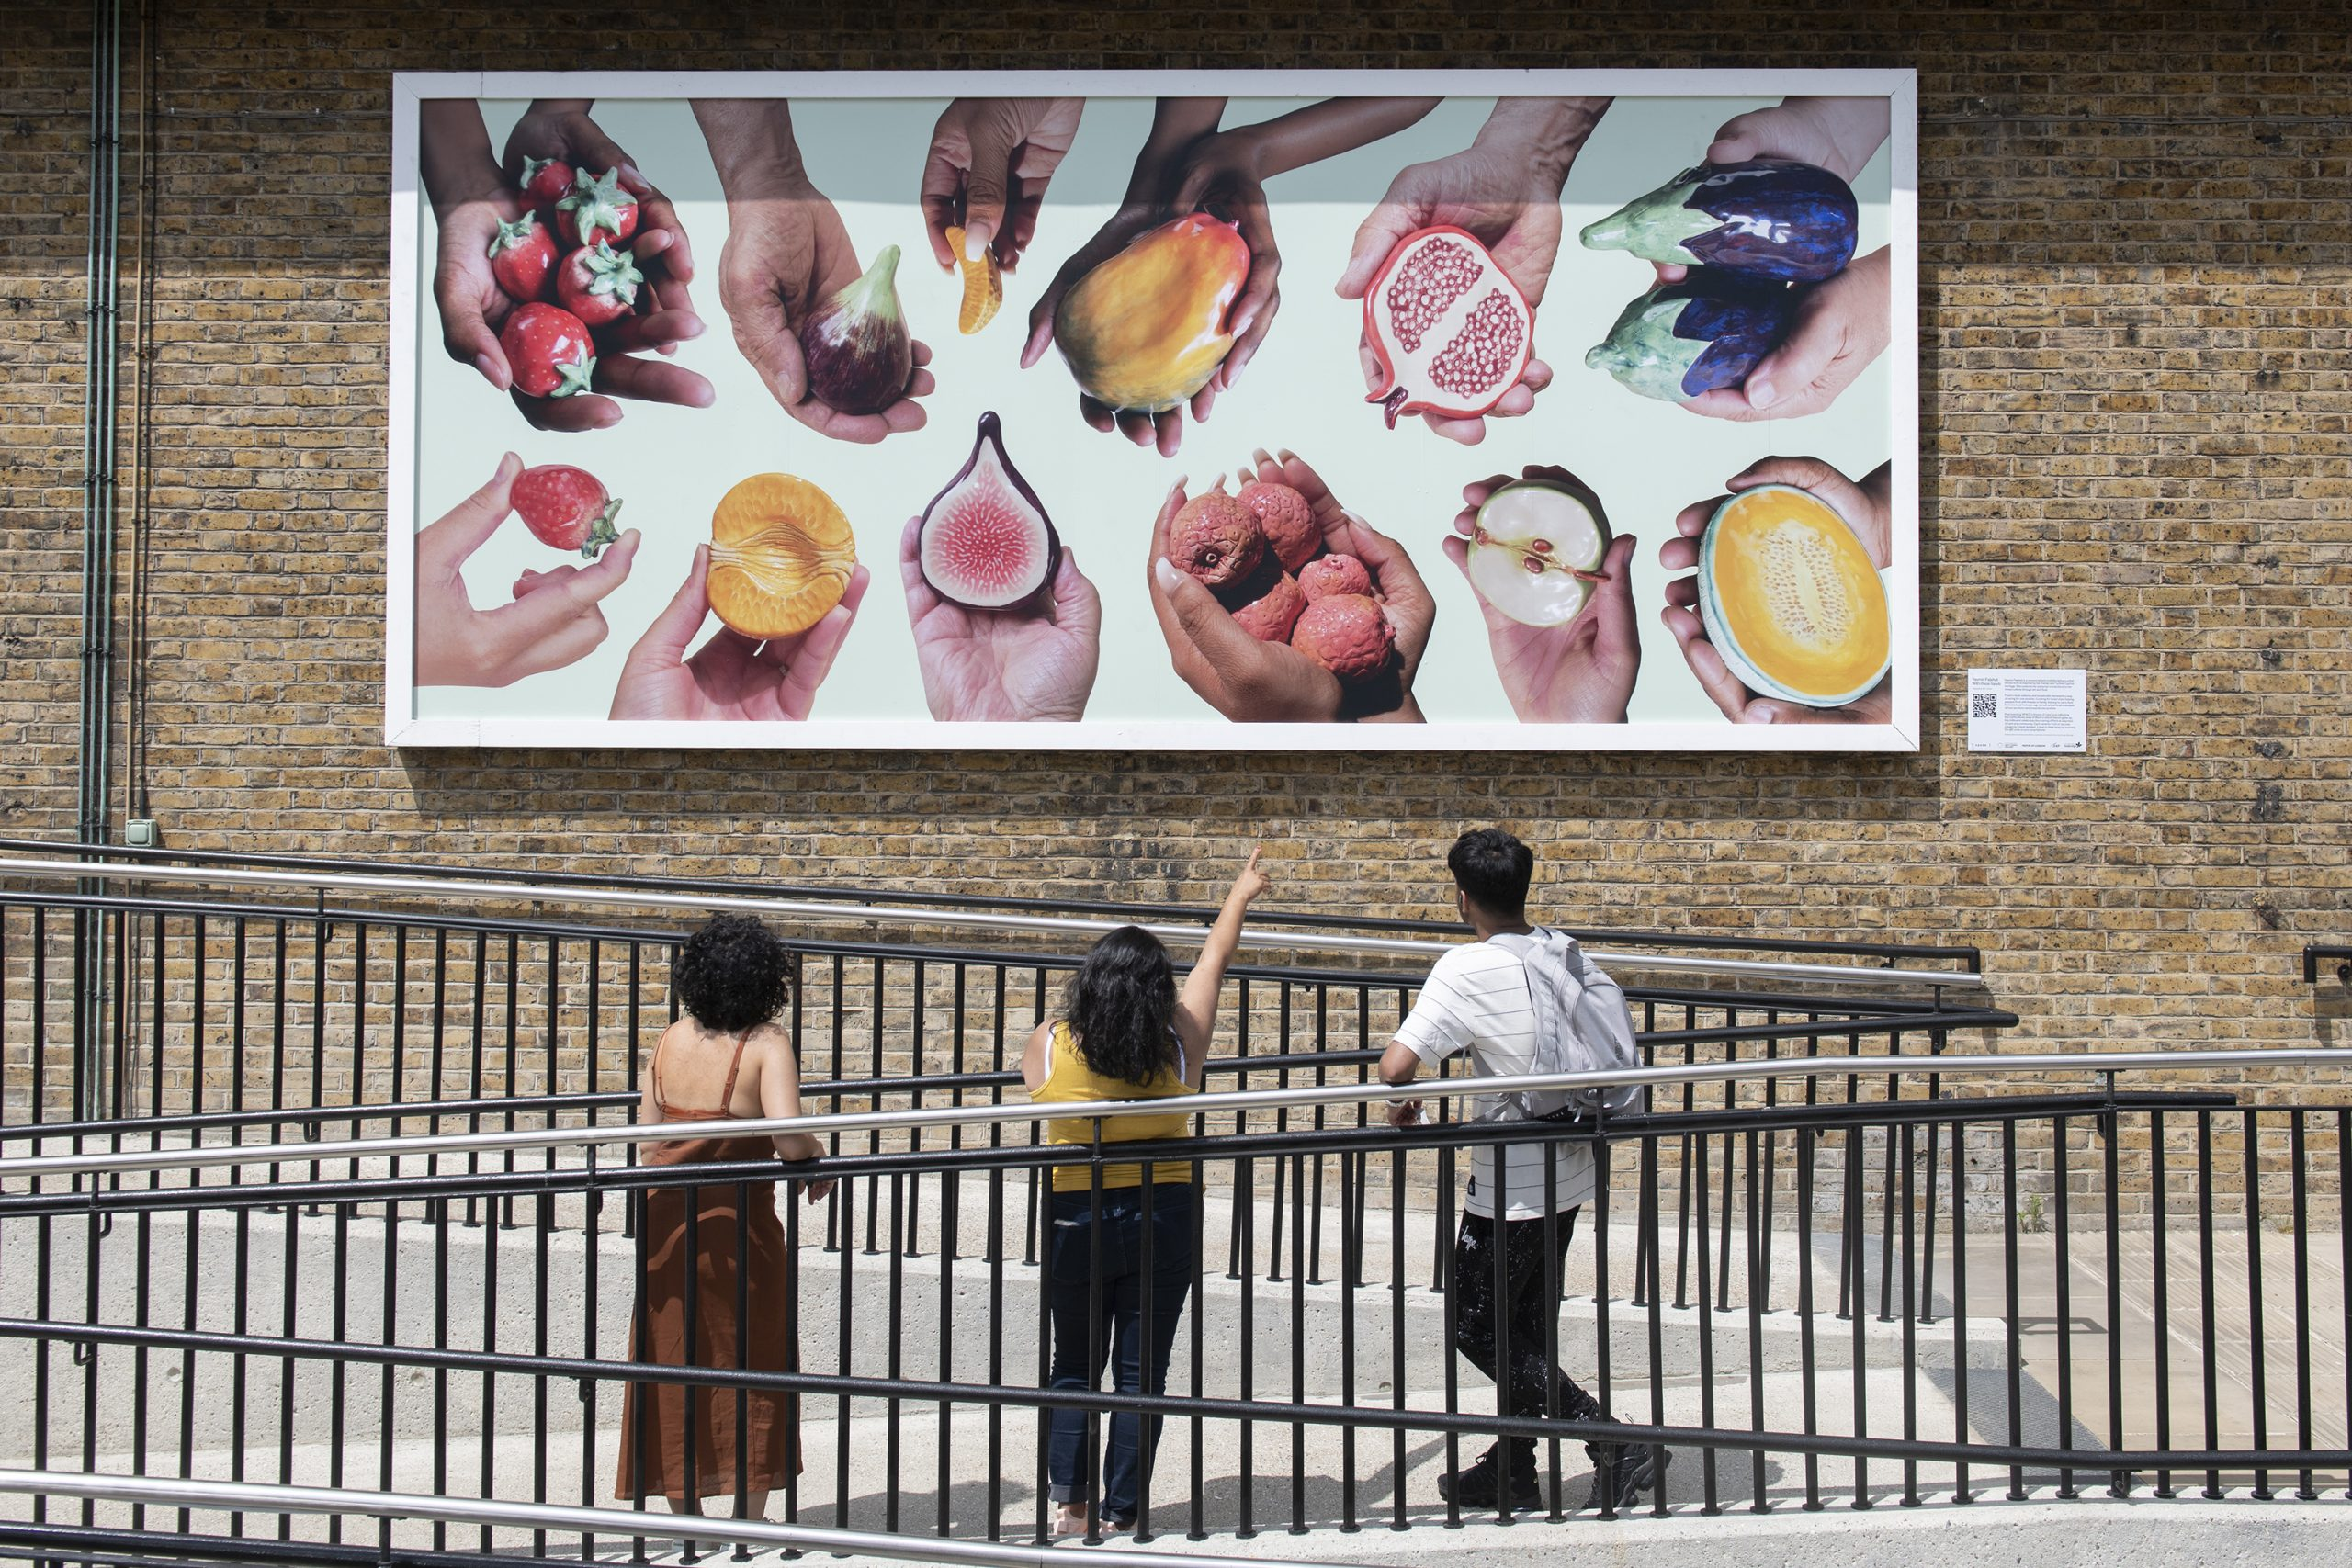 Yasmin Falahat 'With these hands' billboard commission at SPACE Ilford 2021. Photo: David Mirzoeff